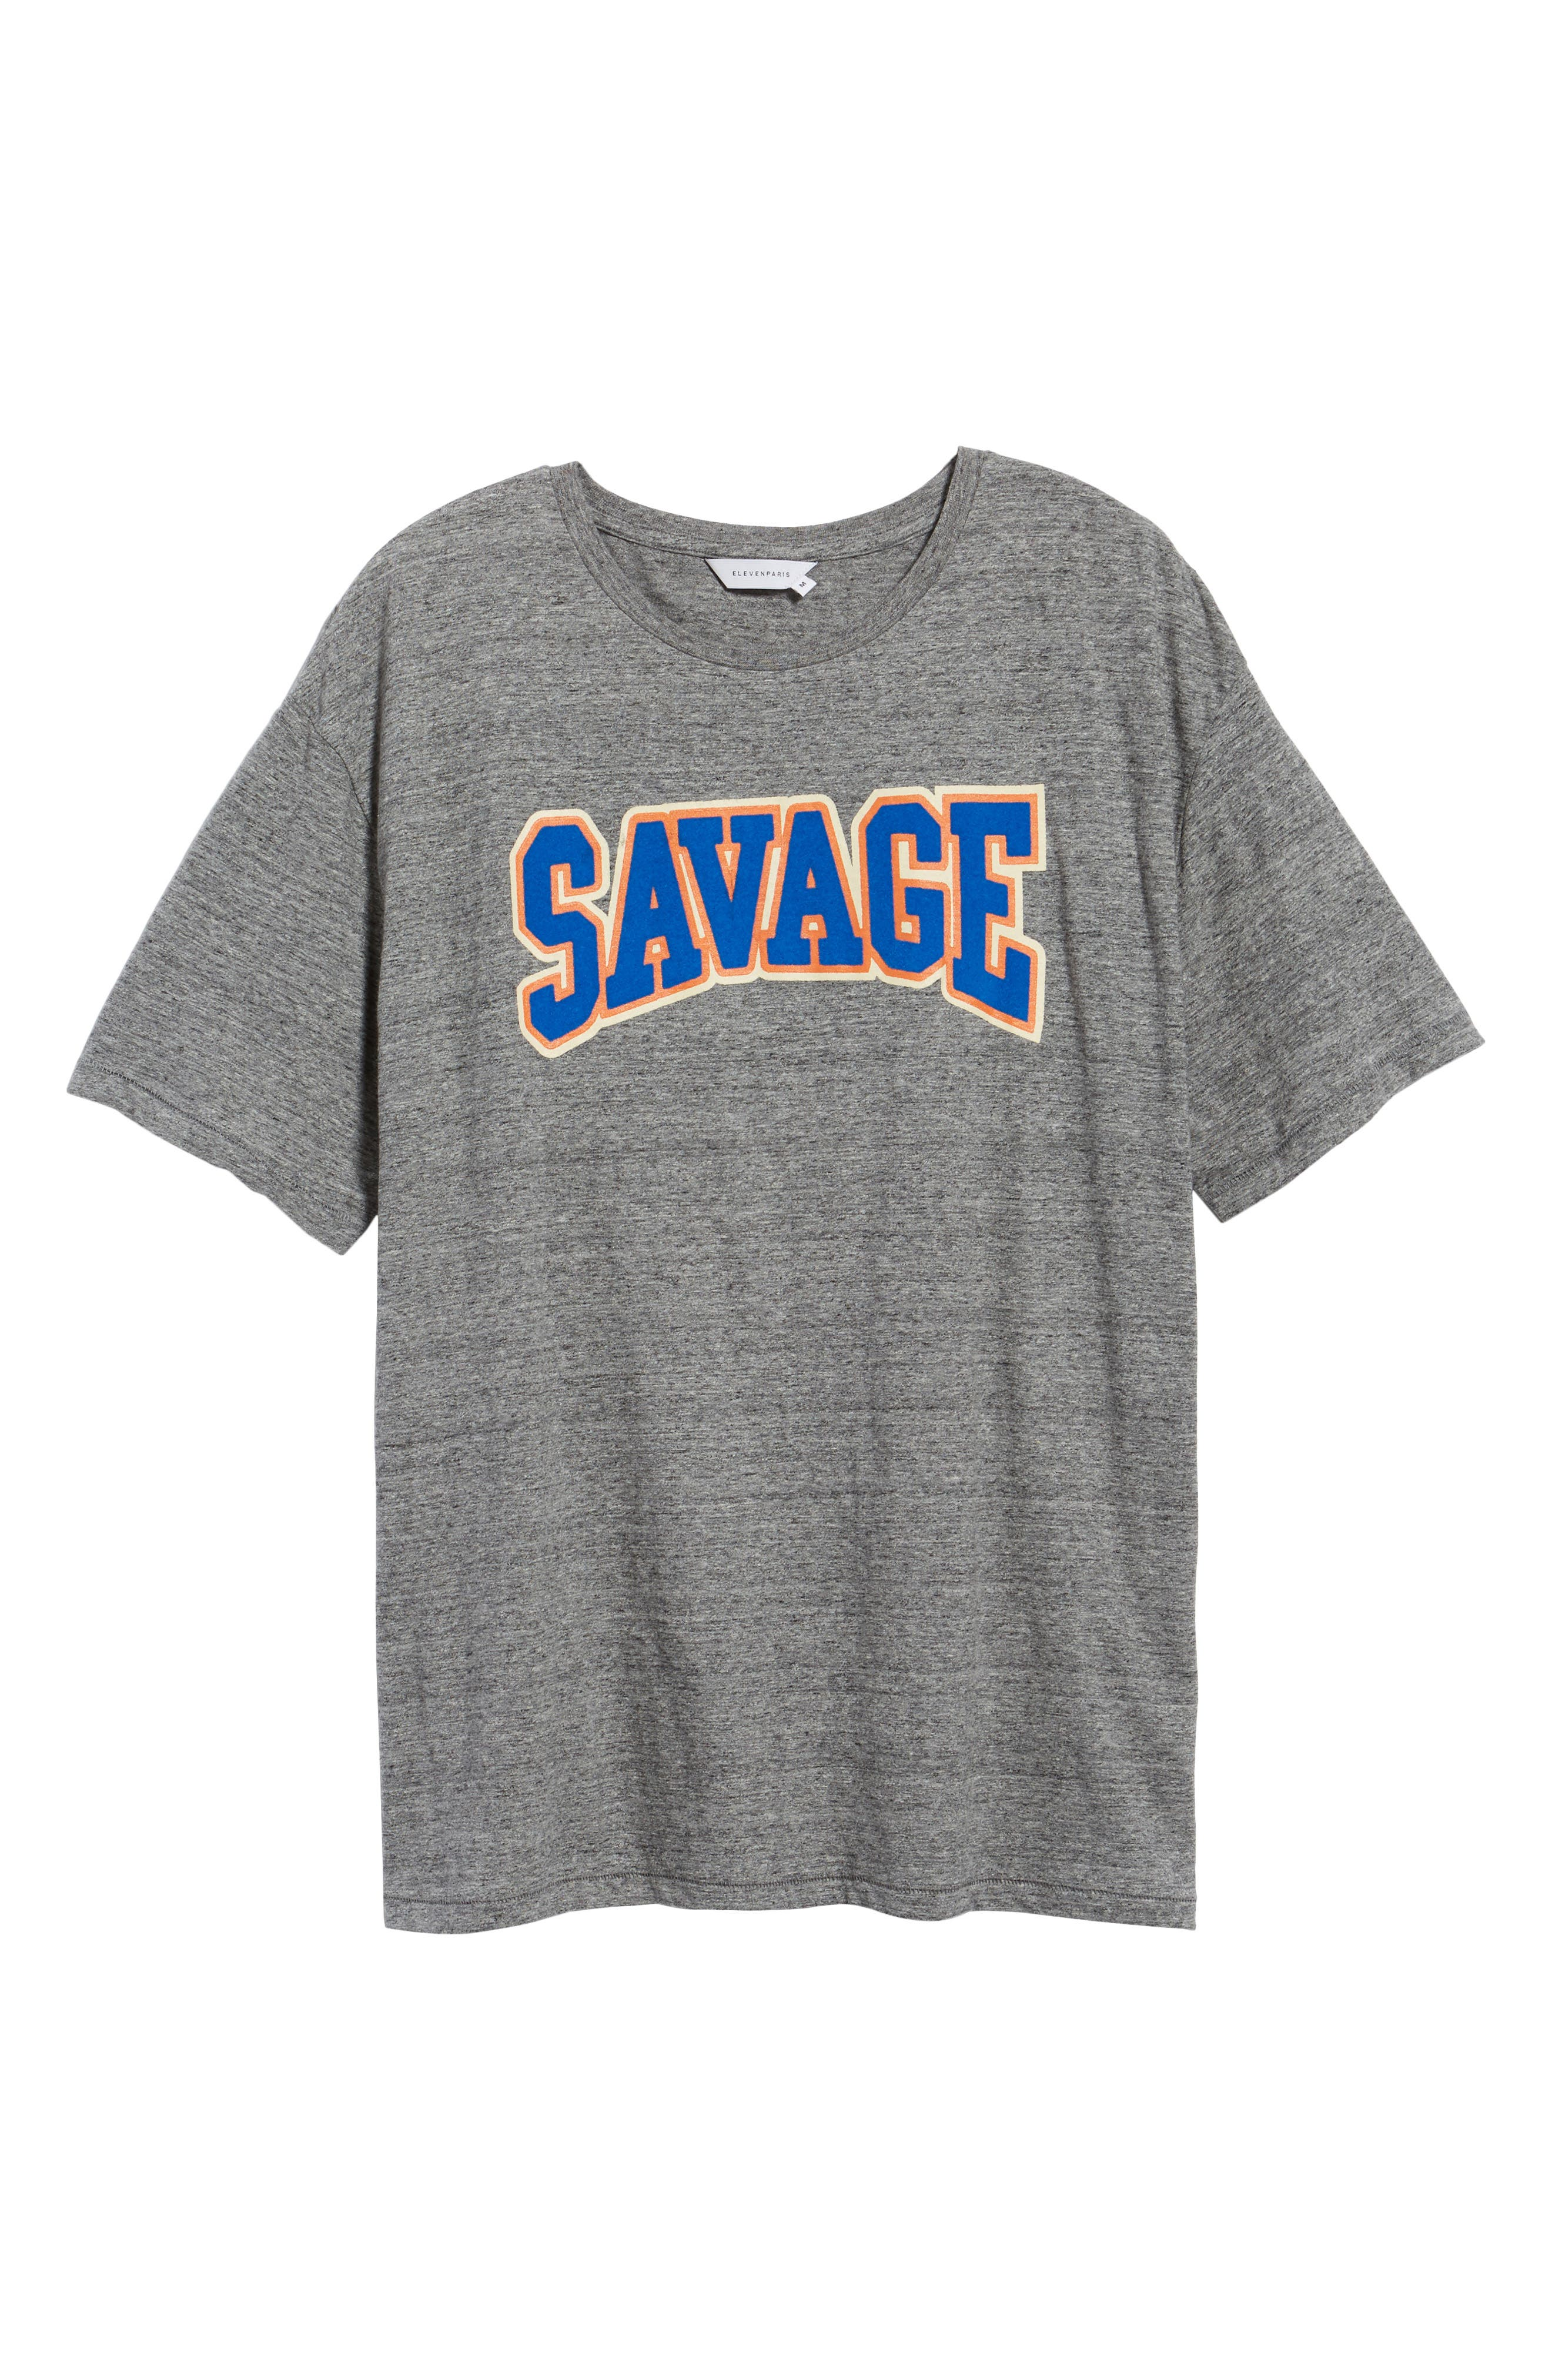 Savage T-Shirt,                             Alternate thumbnail 6, color,